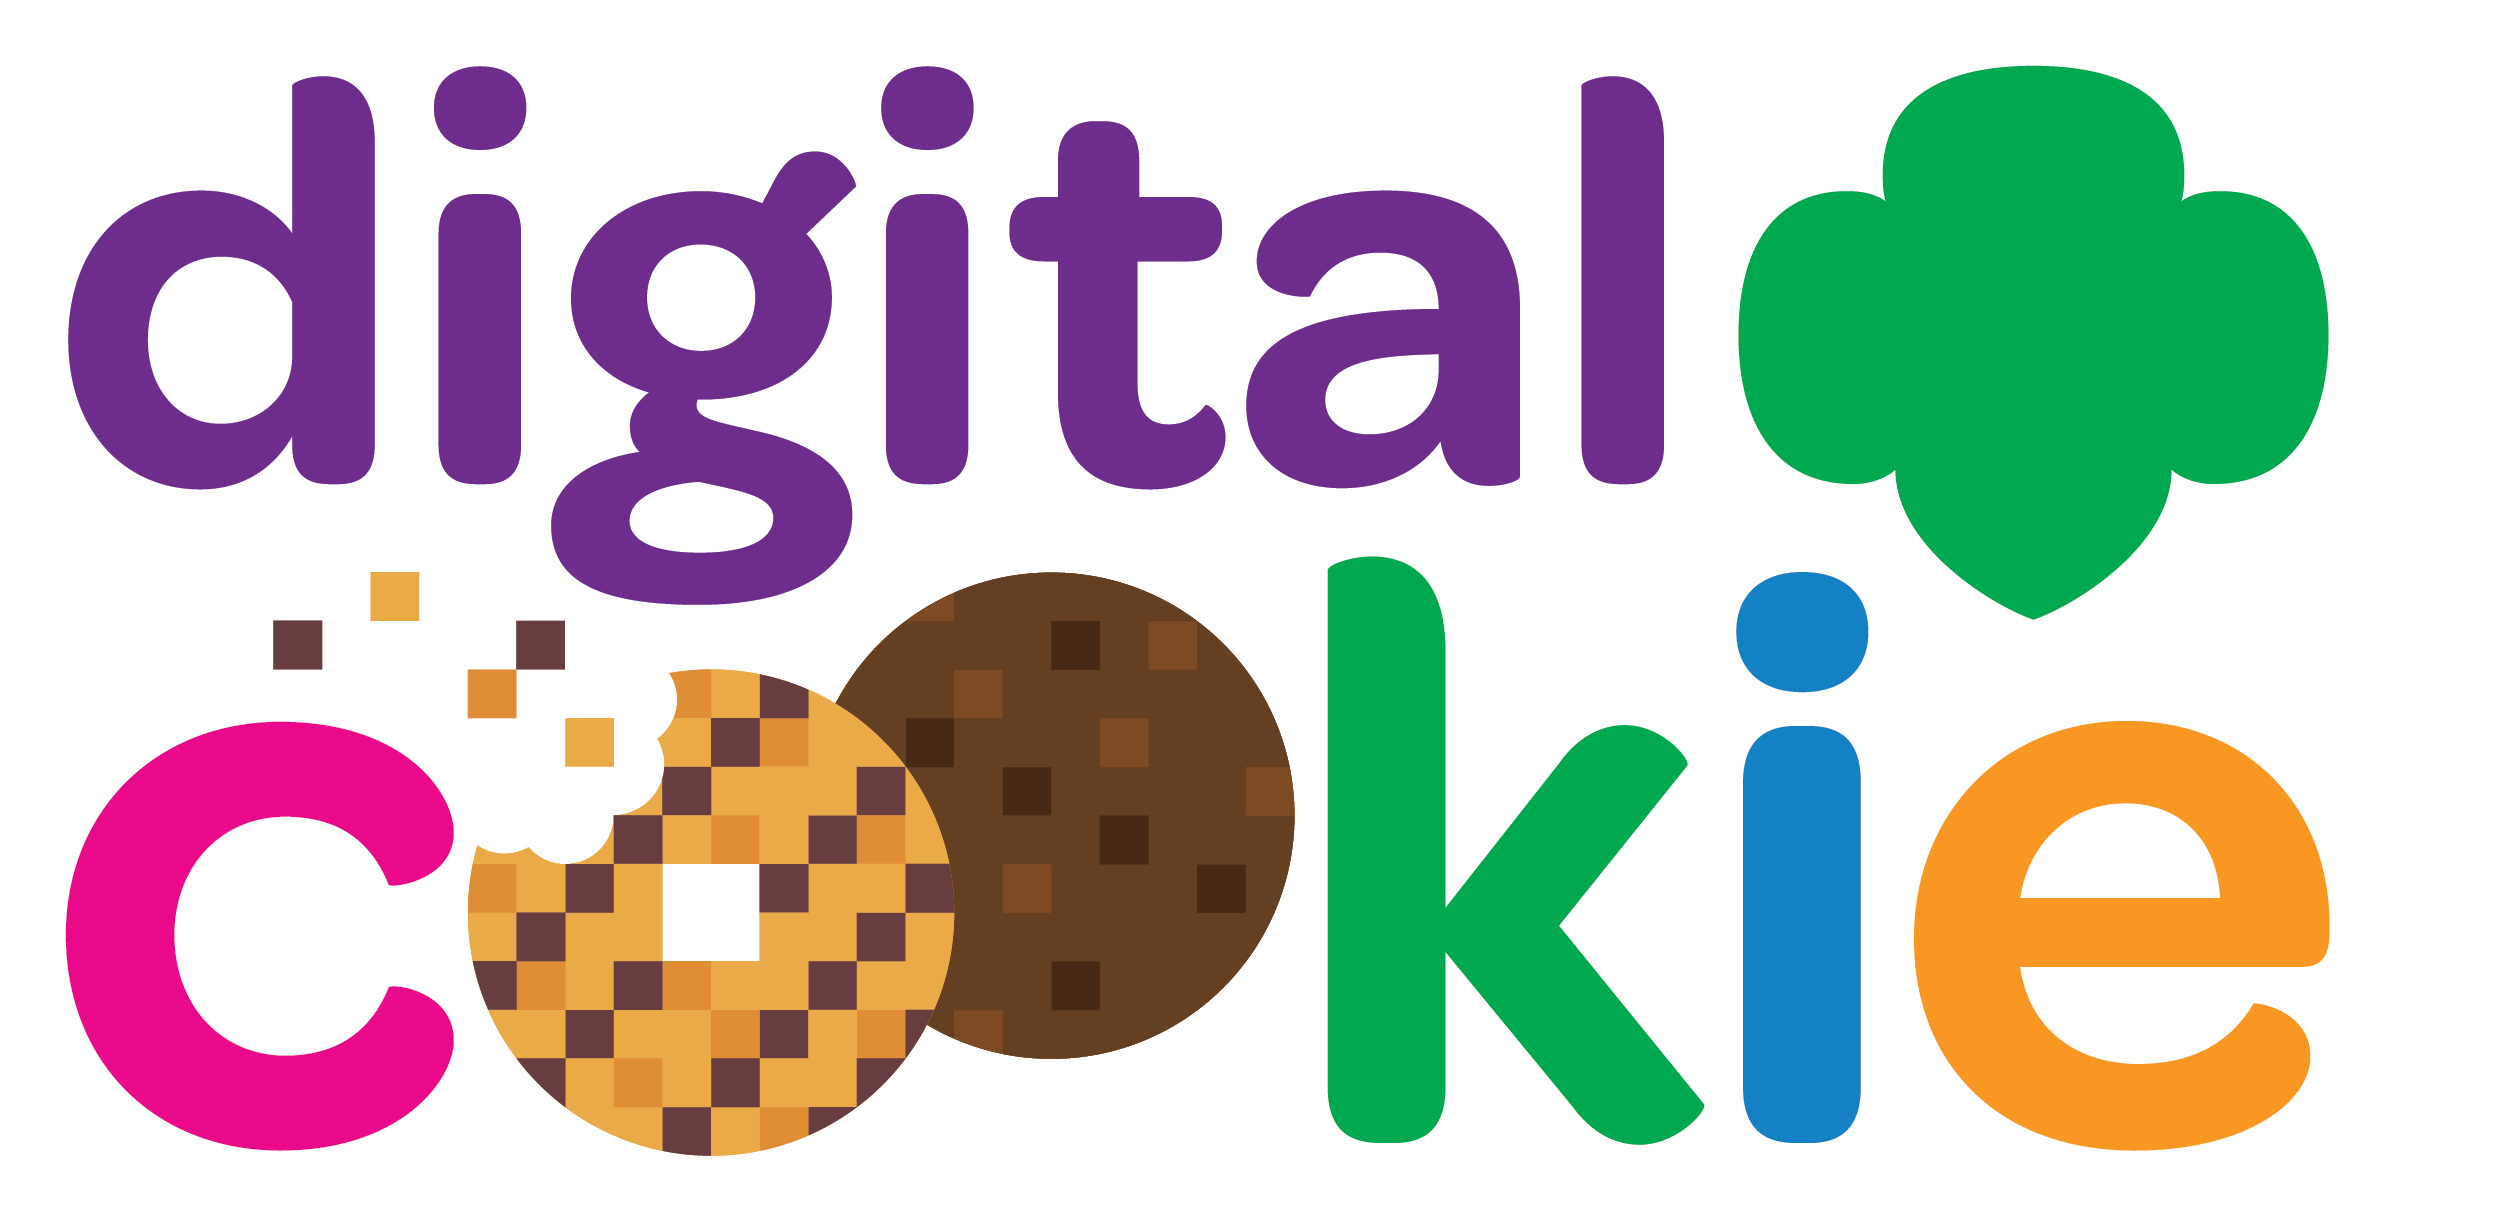 Digital Cookie App